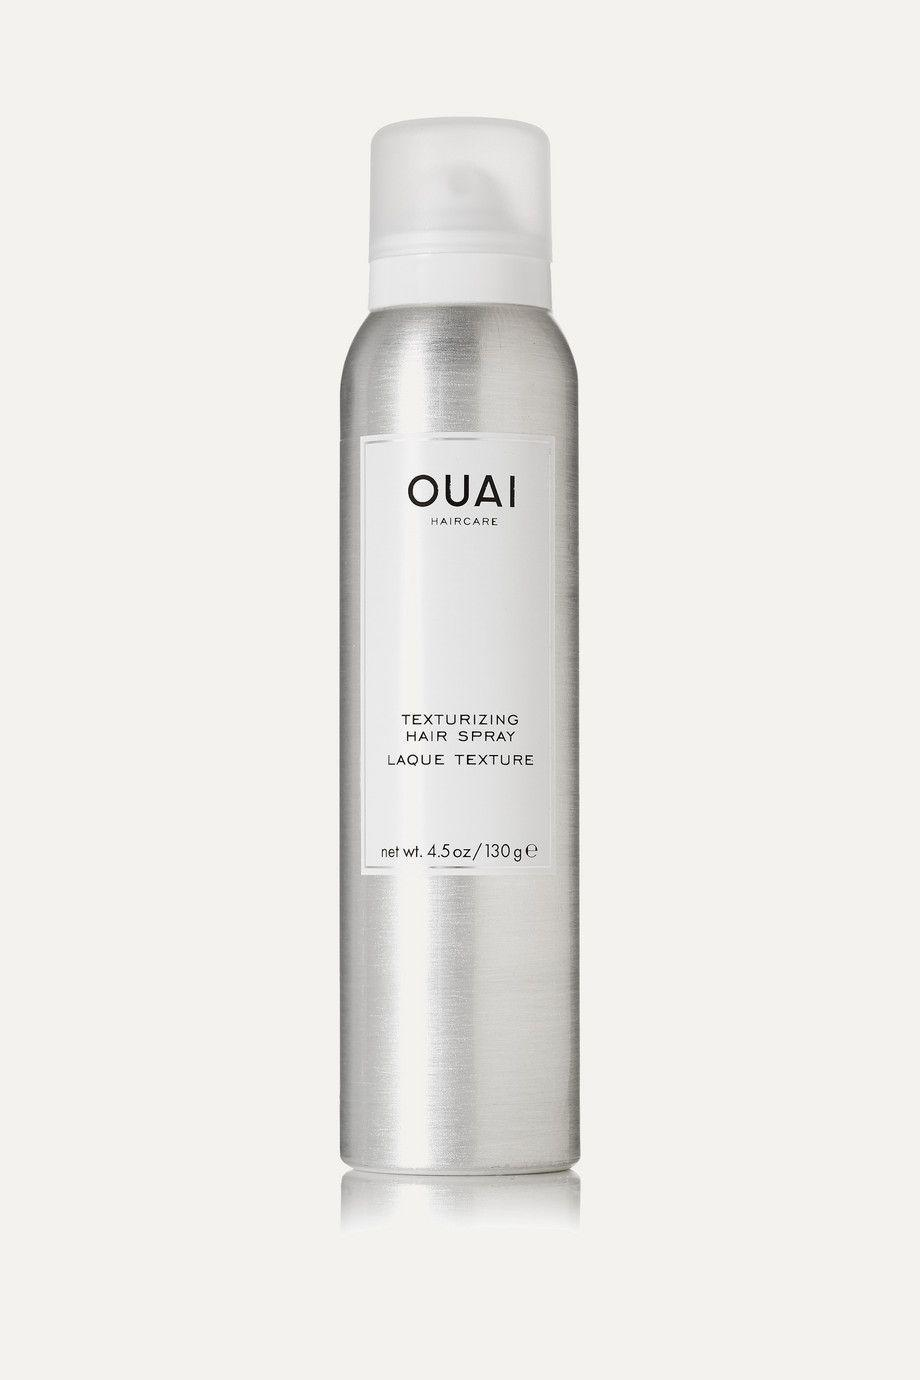 """<p><strong>Ouai Haircare</strong></p><p>net-a-porter.com</p><p><strong>$26.00</strong></p><p><a href=""""https://go.redirectingat.com?id=74968X1596630&url=https%3A%2F%2Fwww.net-a-porter.com%2Fen-us%2Fshop%2Fproduct%2Fouai-haircare%2Ftexturizing-hair-spray-130g%2F766636&sref=https%3A%2F%2Fwww.countryliving.com%2Flife%2Fentertainment%2Fg36701989%2Froyal-family-fashion-hacks-style-tricks%2F"""" rel=""""nofollow noopener"""" target=""""_blank"""" data-ylk=""""slk:shop now"""" class=""""link rapid-noclick-resp"""">shop now</a></p><p>Crunchy hair is sooo '80s. For a strong hold that feels natural and soft, try this option from Jen Atkin's line Ouai.</p>"""